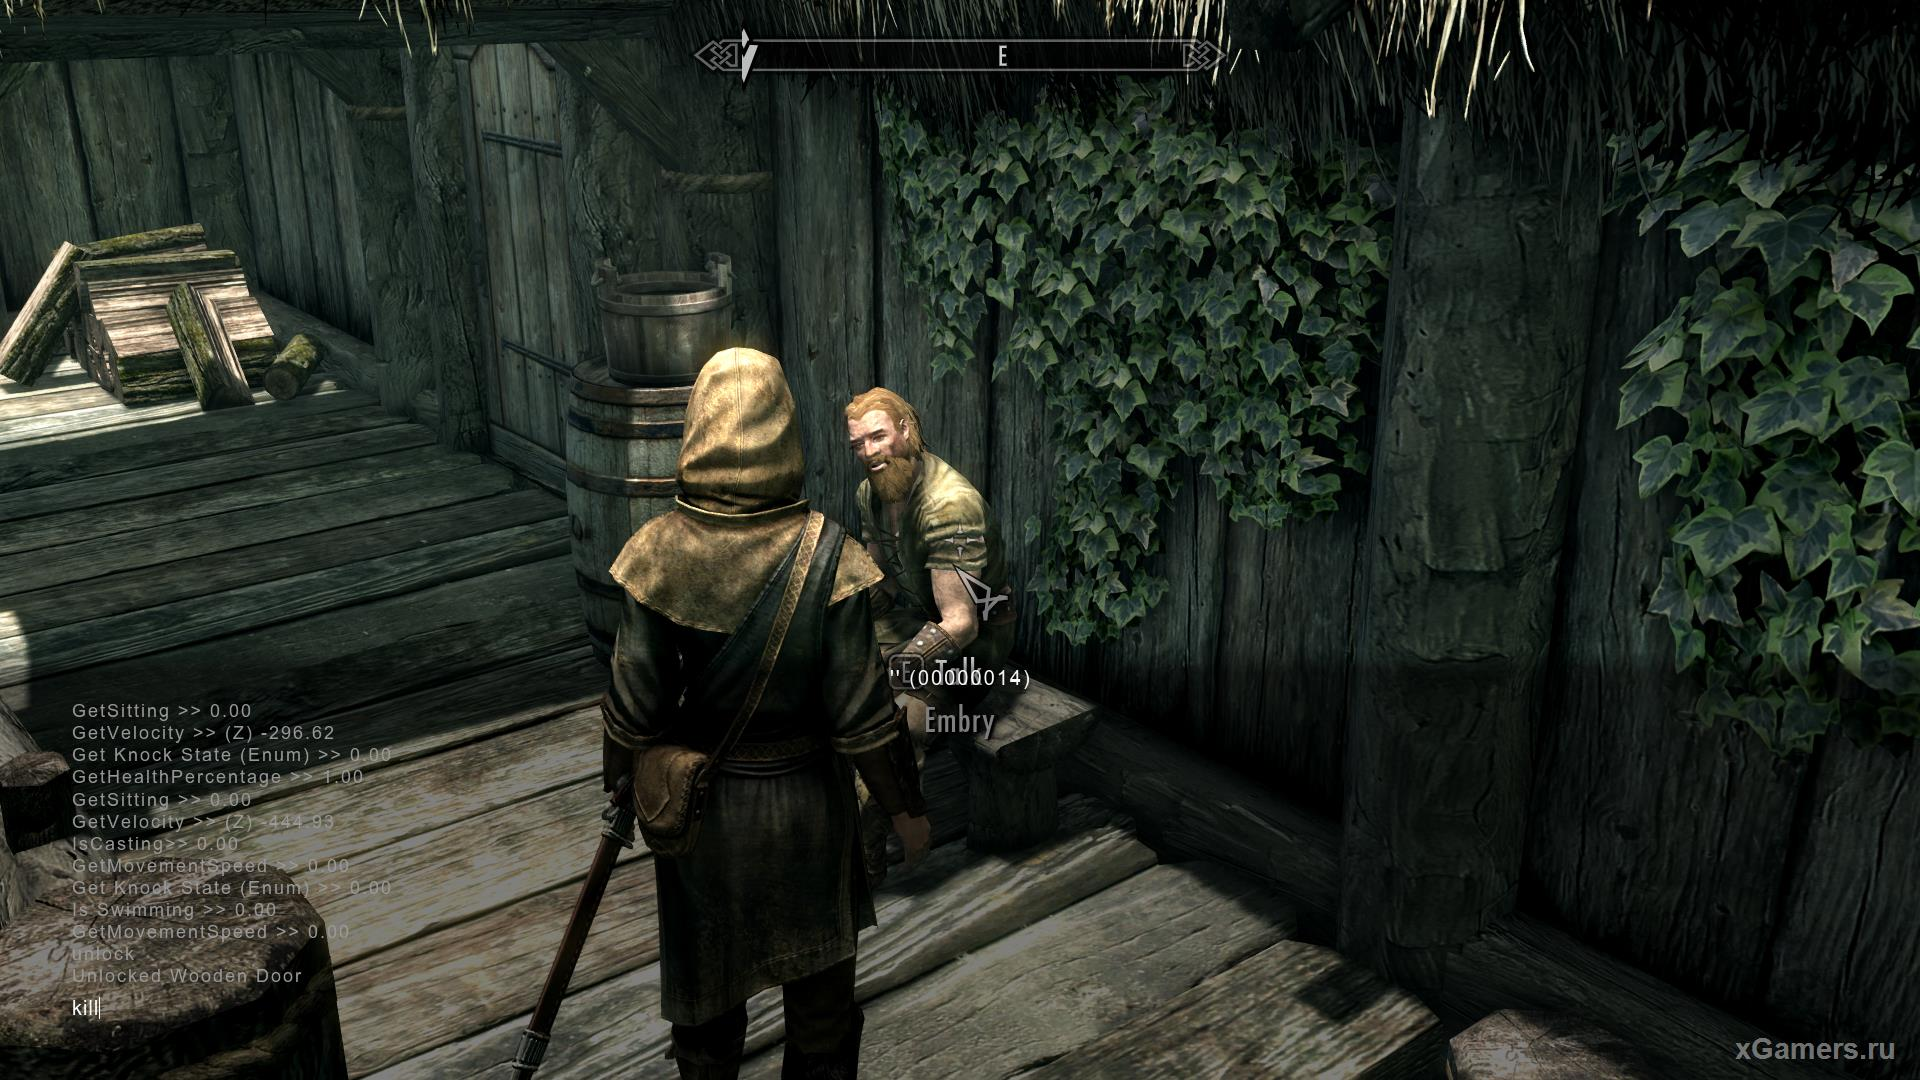 Use cheats in Skyrim to defeat the enemy